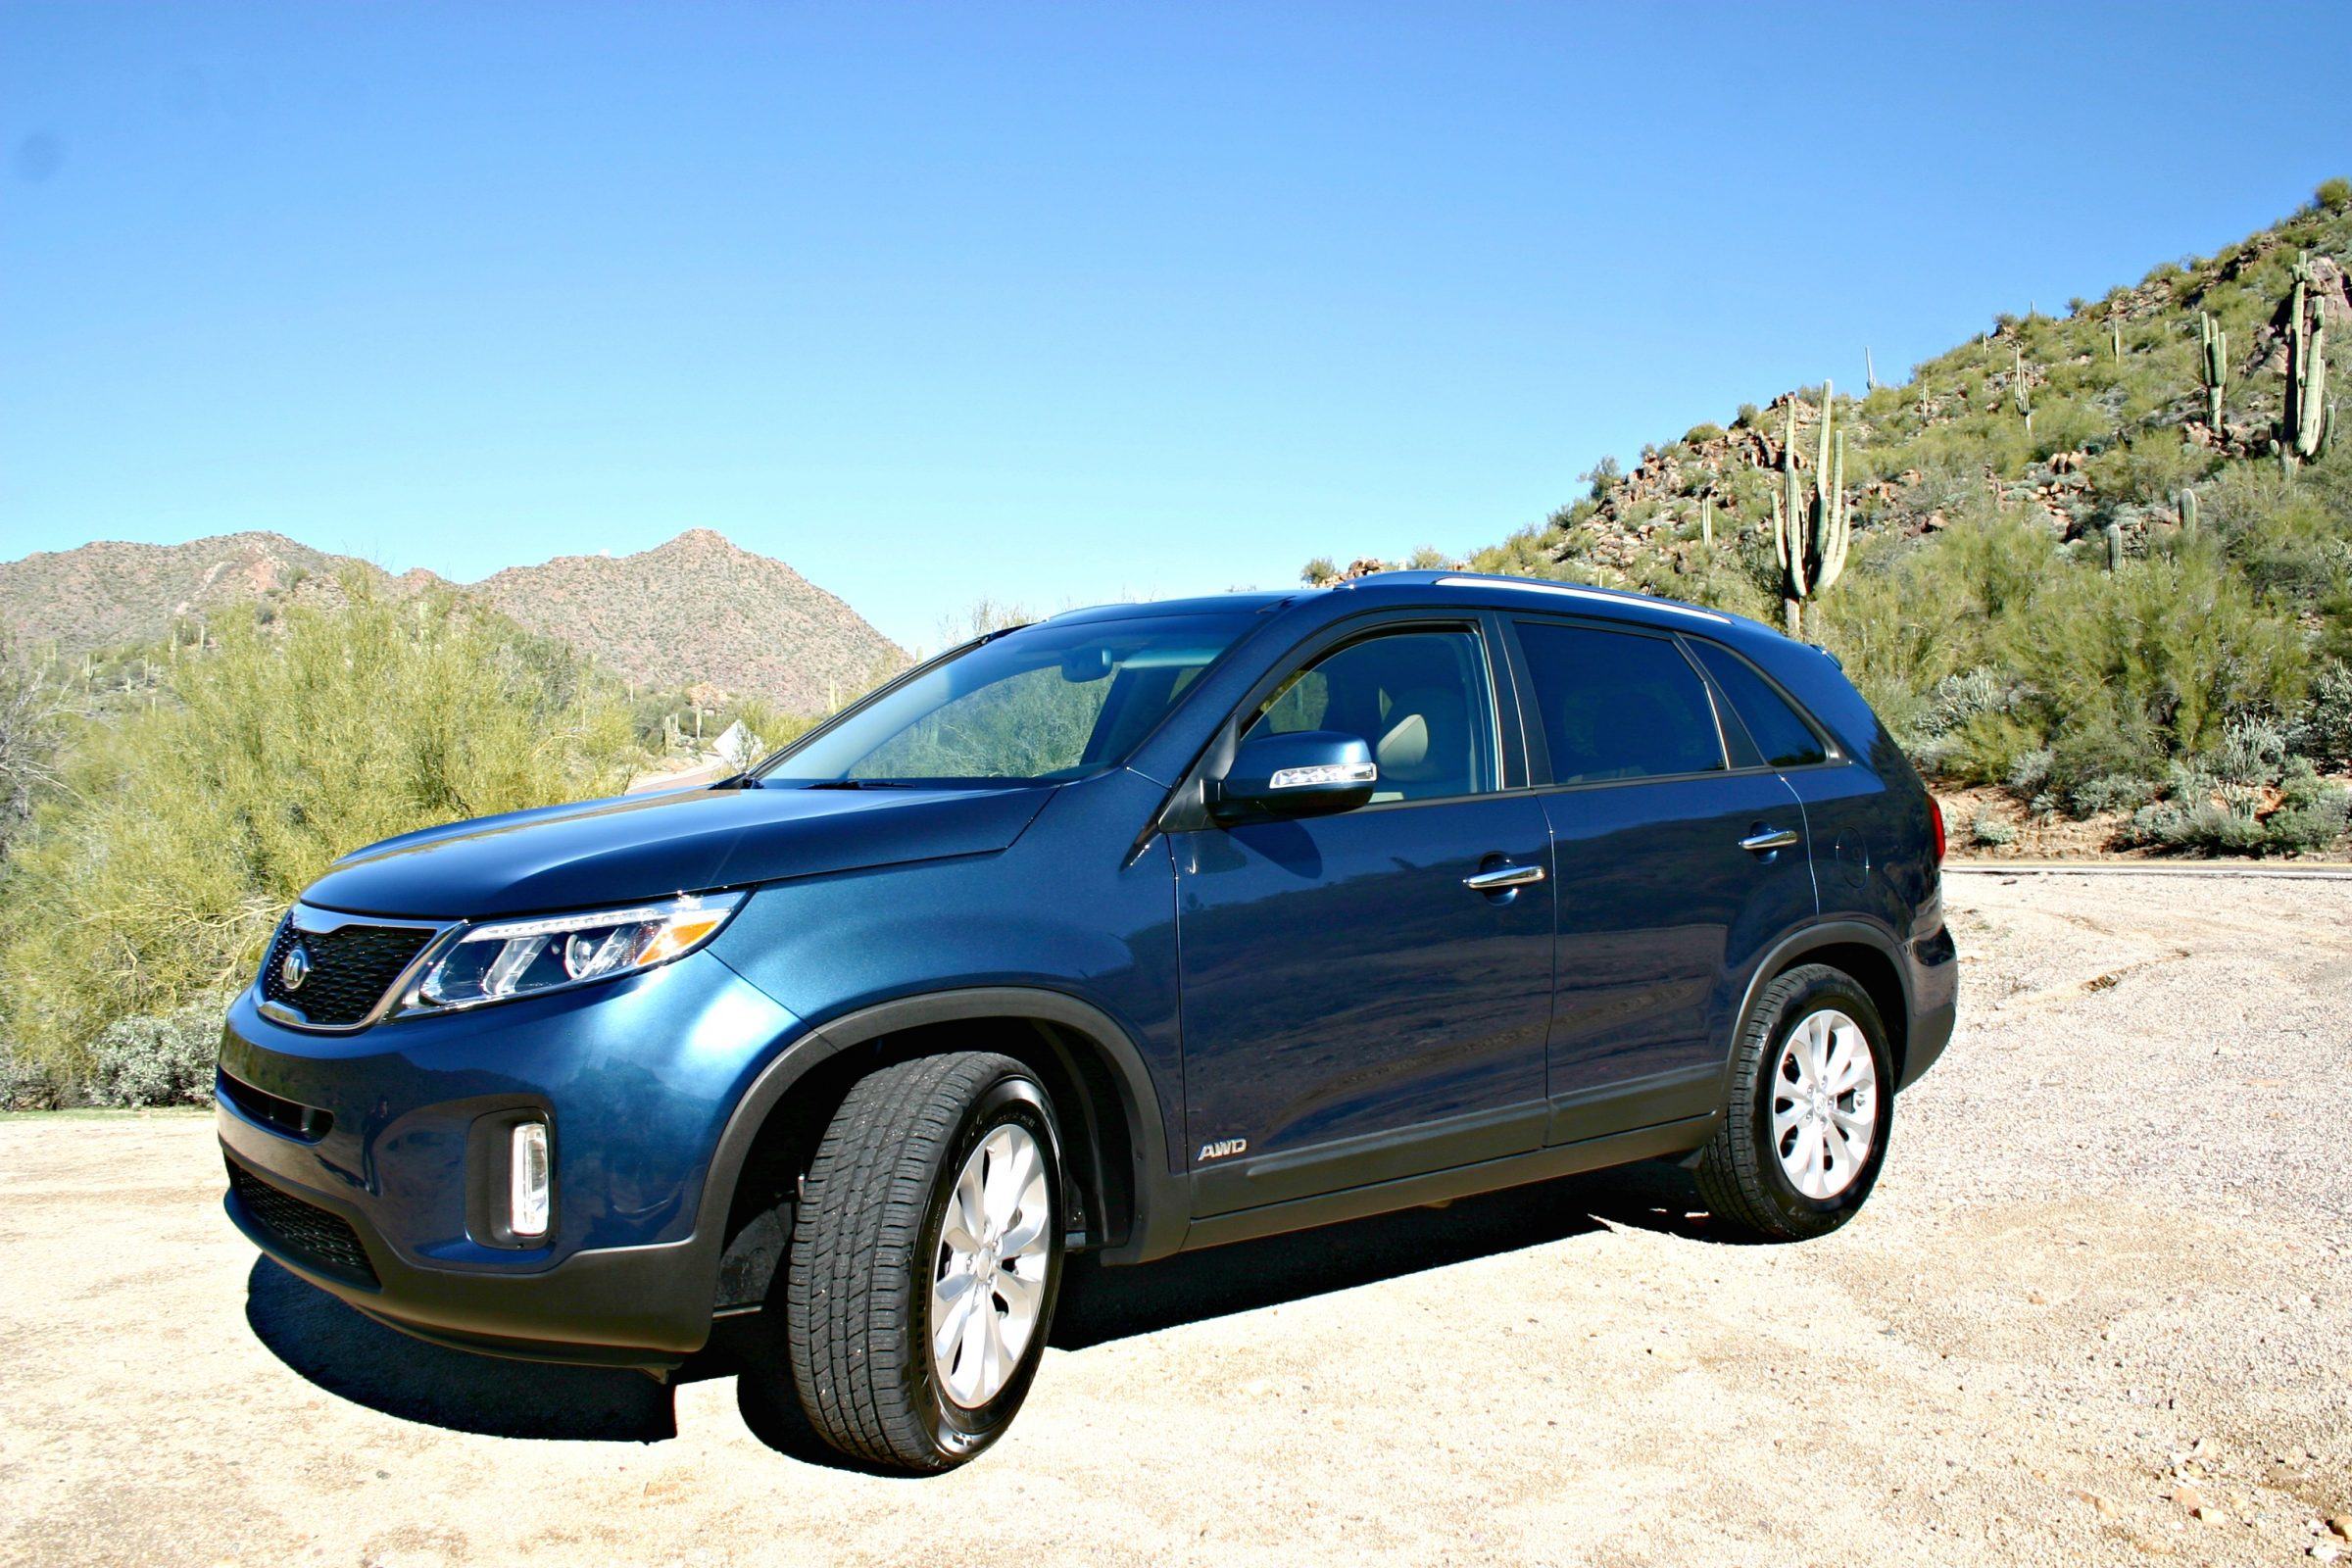 2014 kia sorento review and first drive jessica gottlieb. Black Bedroom Furniture Sets. Home Design Ideas